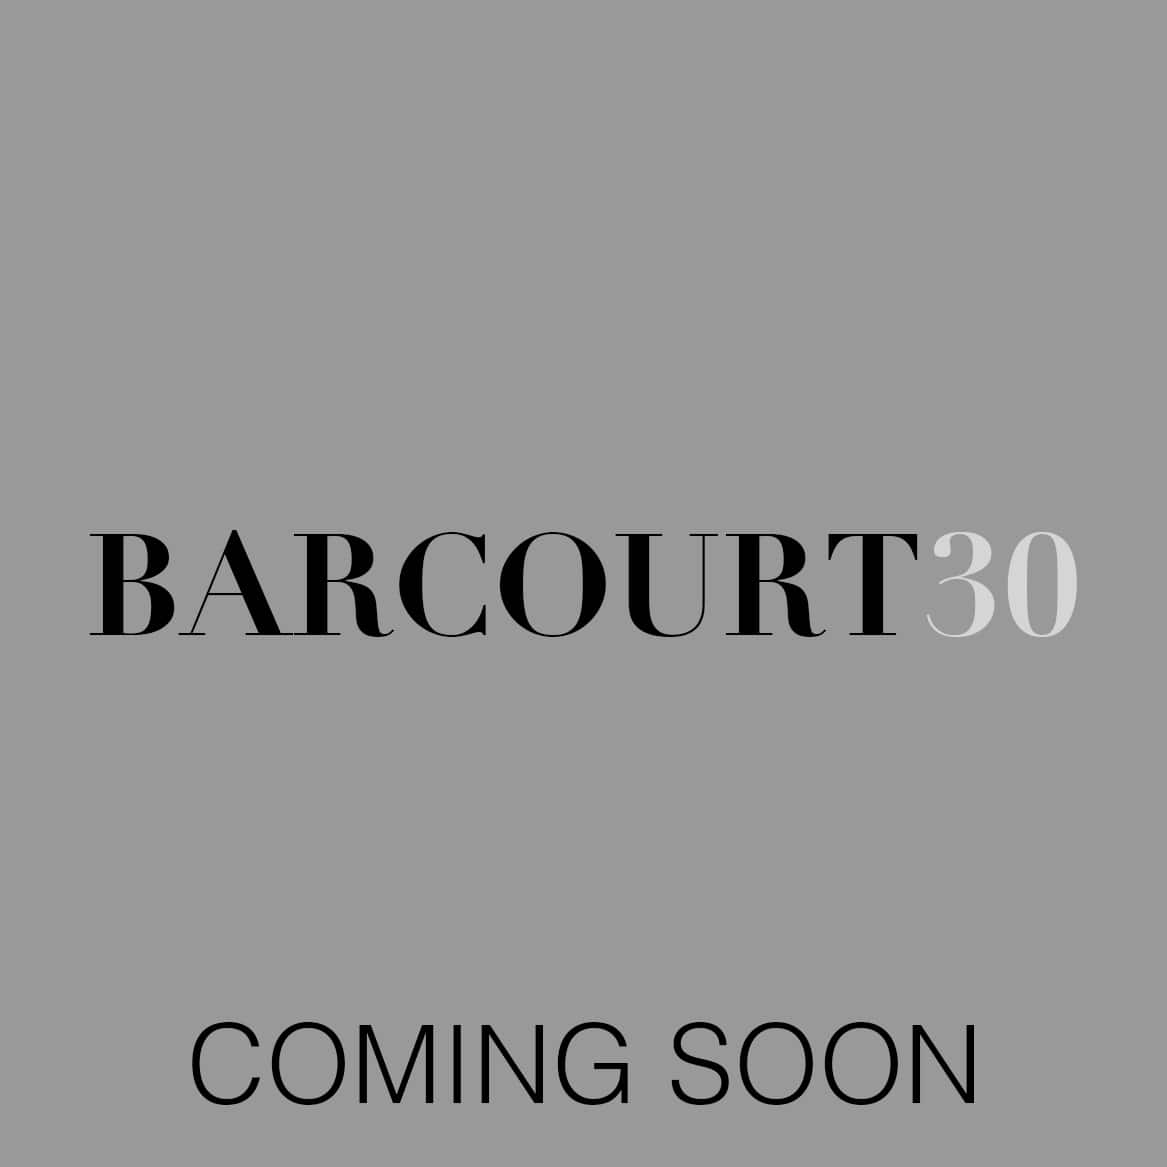 Barcourt 30 - Content Cover_Coming Soon-min.jpg